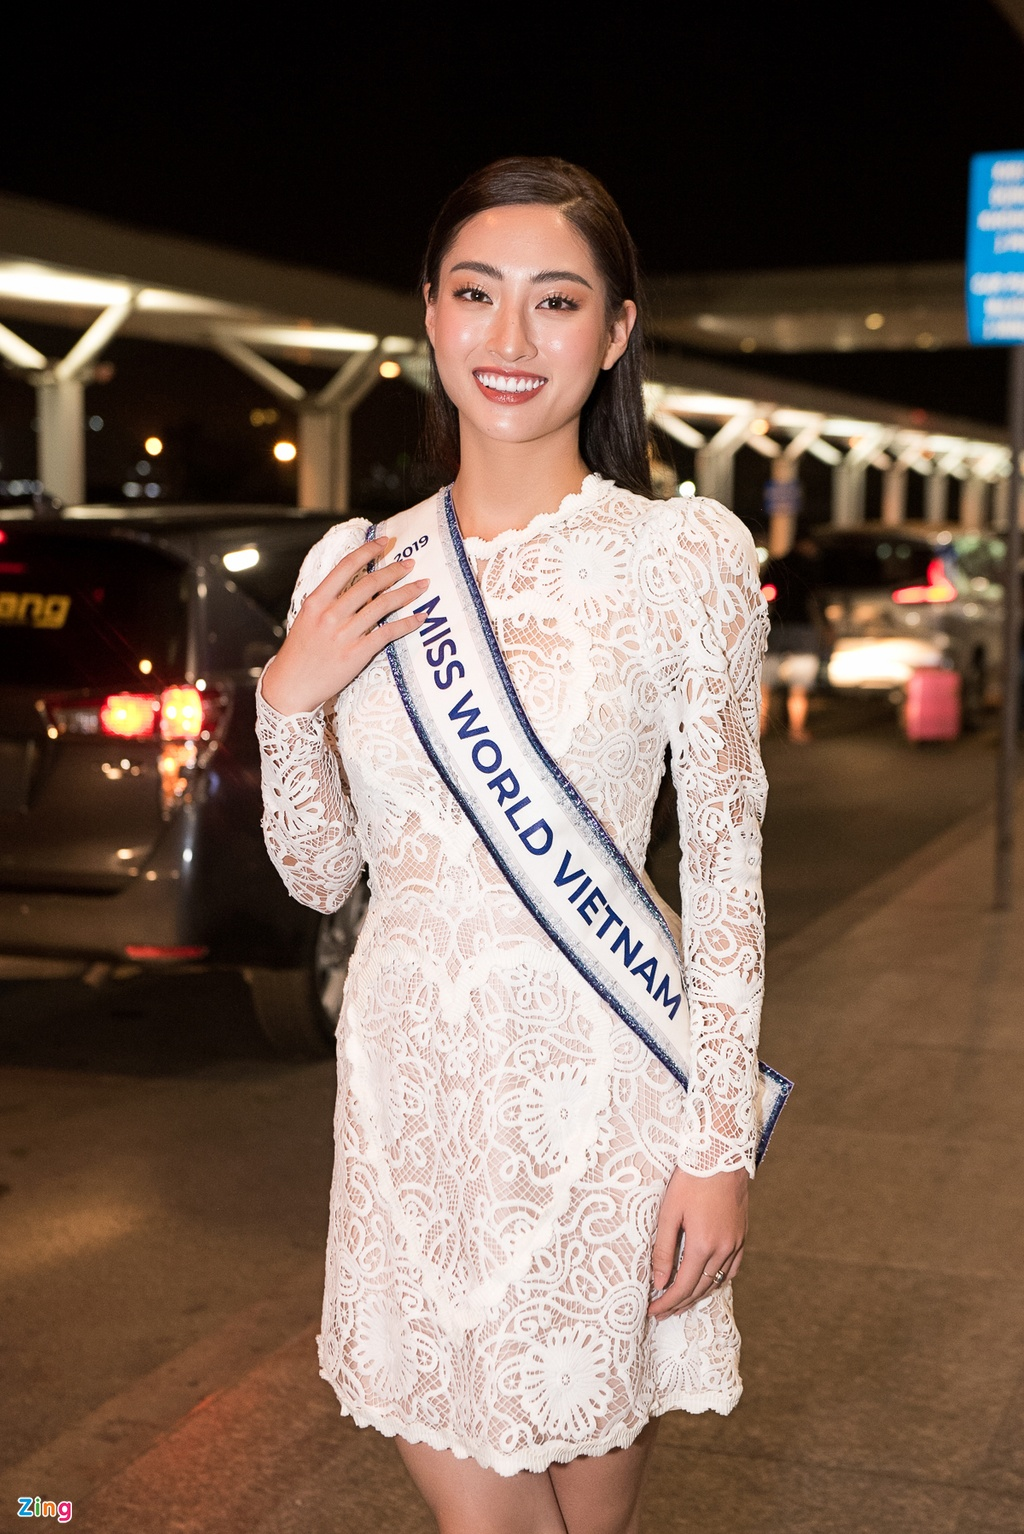 luong thuy linh thi miss world 2019 anh 2